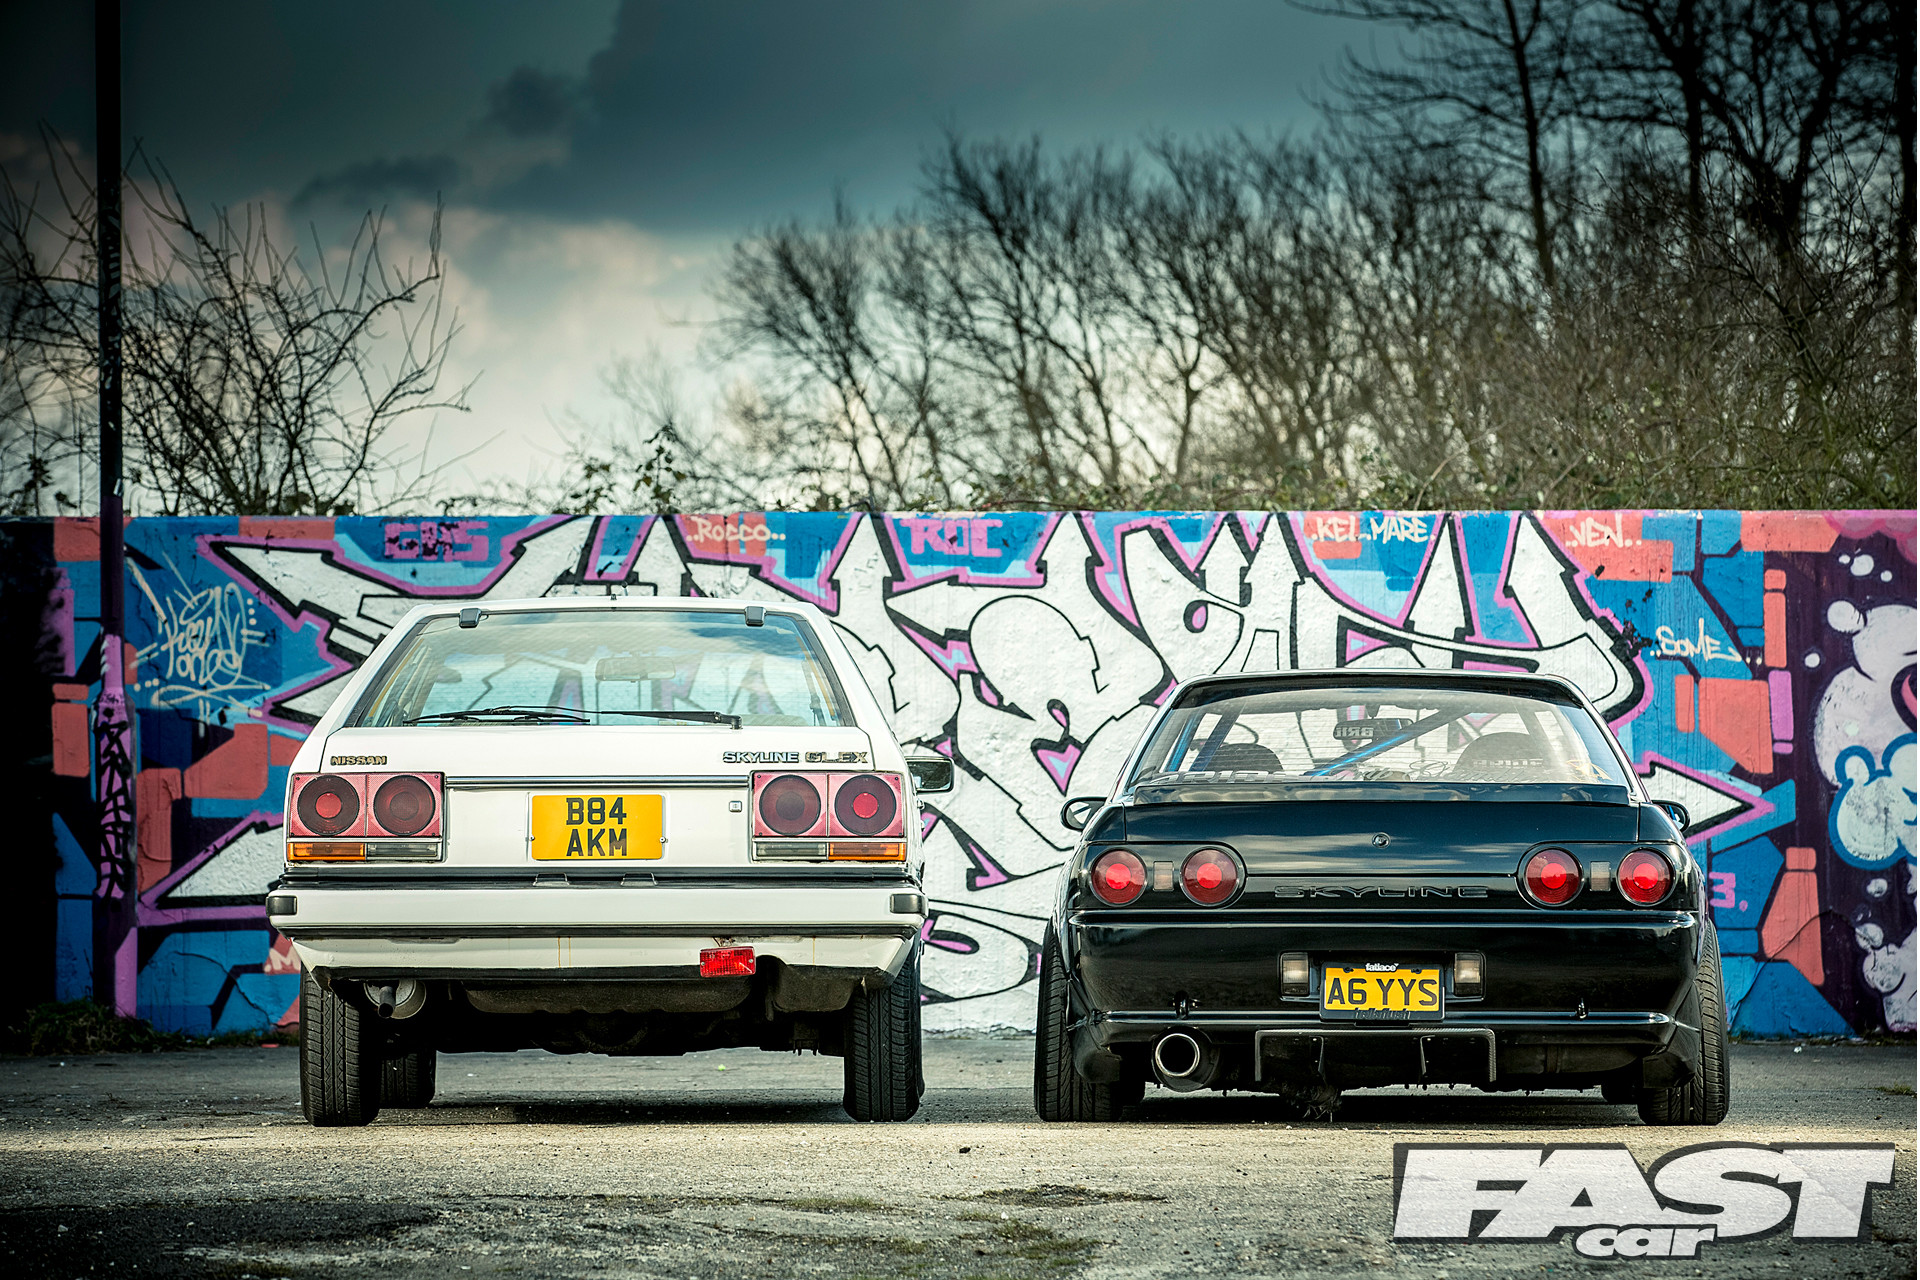 1920x1280 Nissan Skyline R32 wallpaper desktop